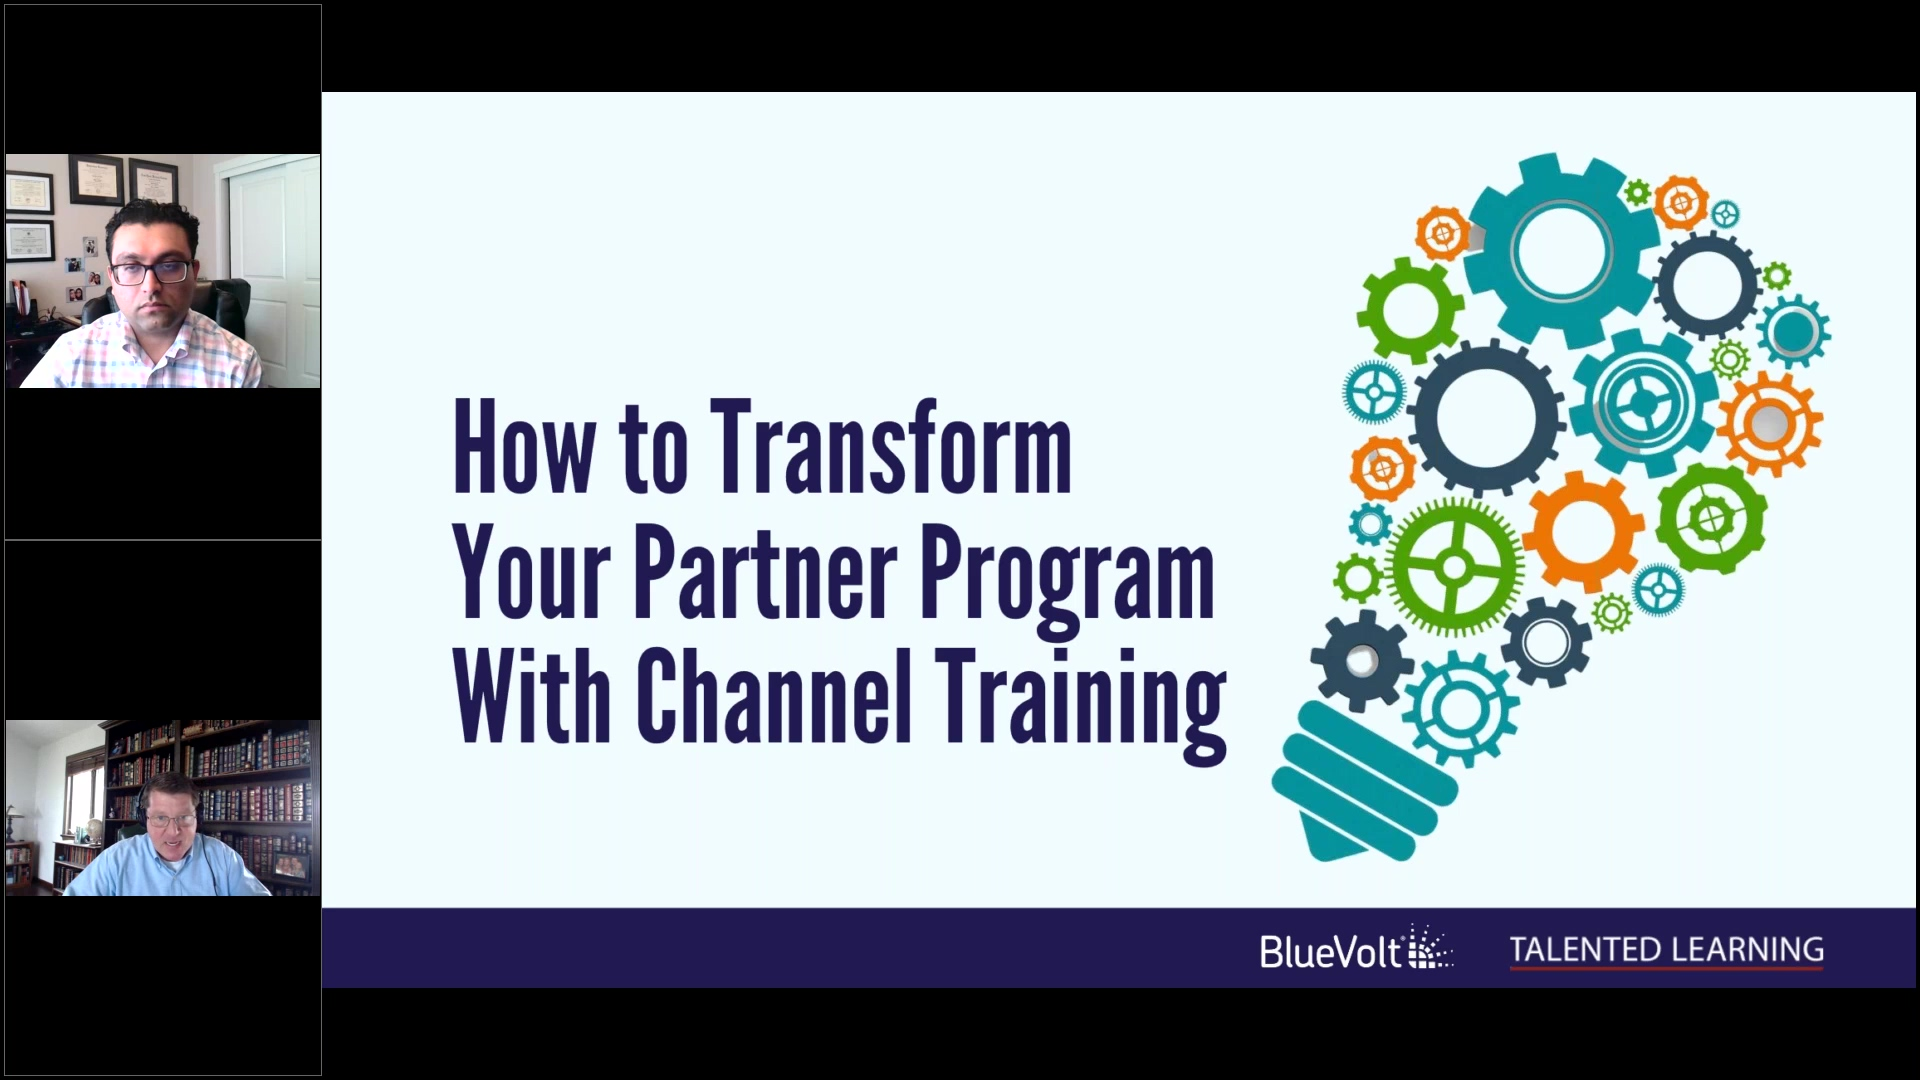 How to Transform Your Partner Program with Channel Training (1)